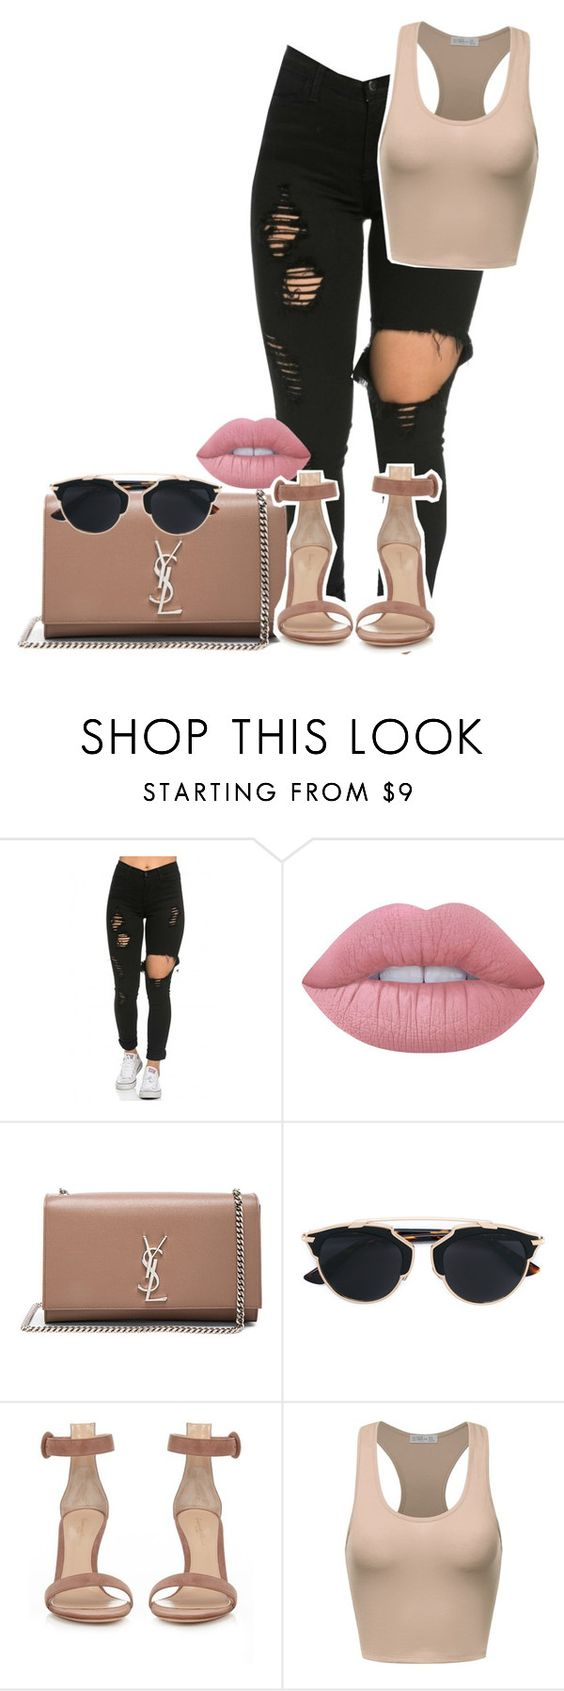 """yes?"" by rebelde4life ❤ liked on Polyvore featuring Lime Crime, Yves Saint Laurent, Christian Dior and Gianvito Rossi"